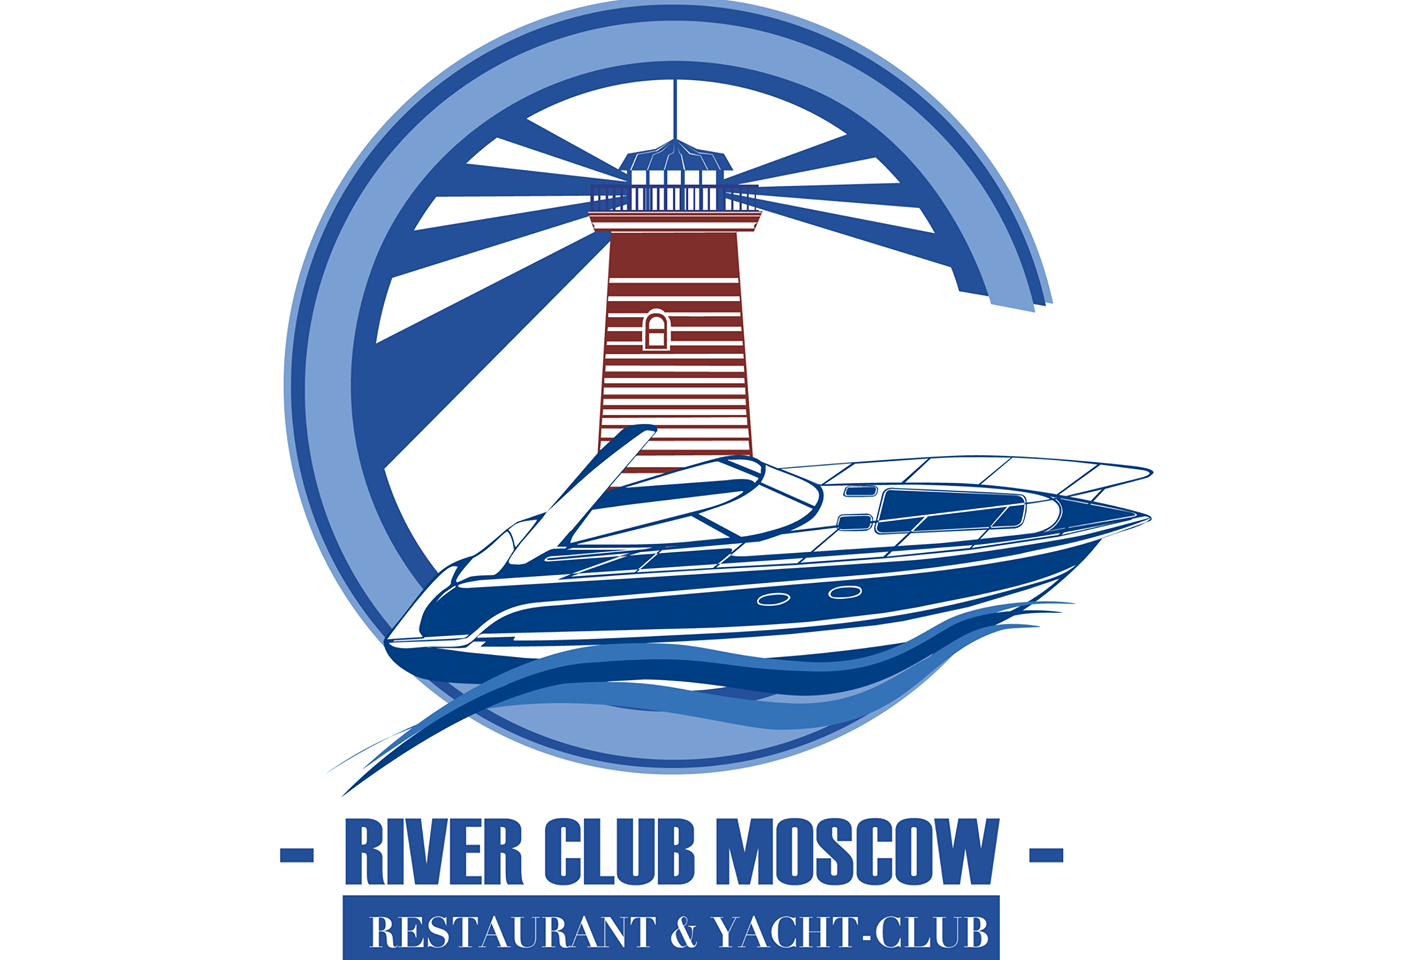 River Club Moscow